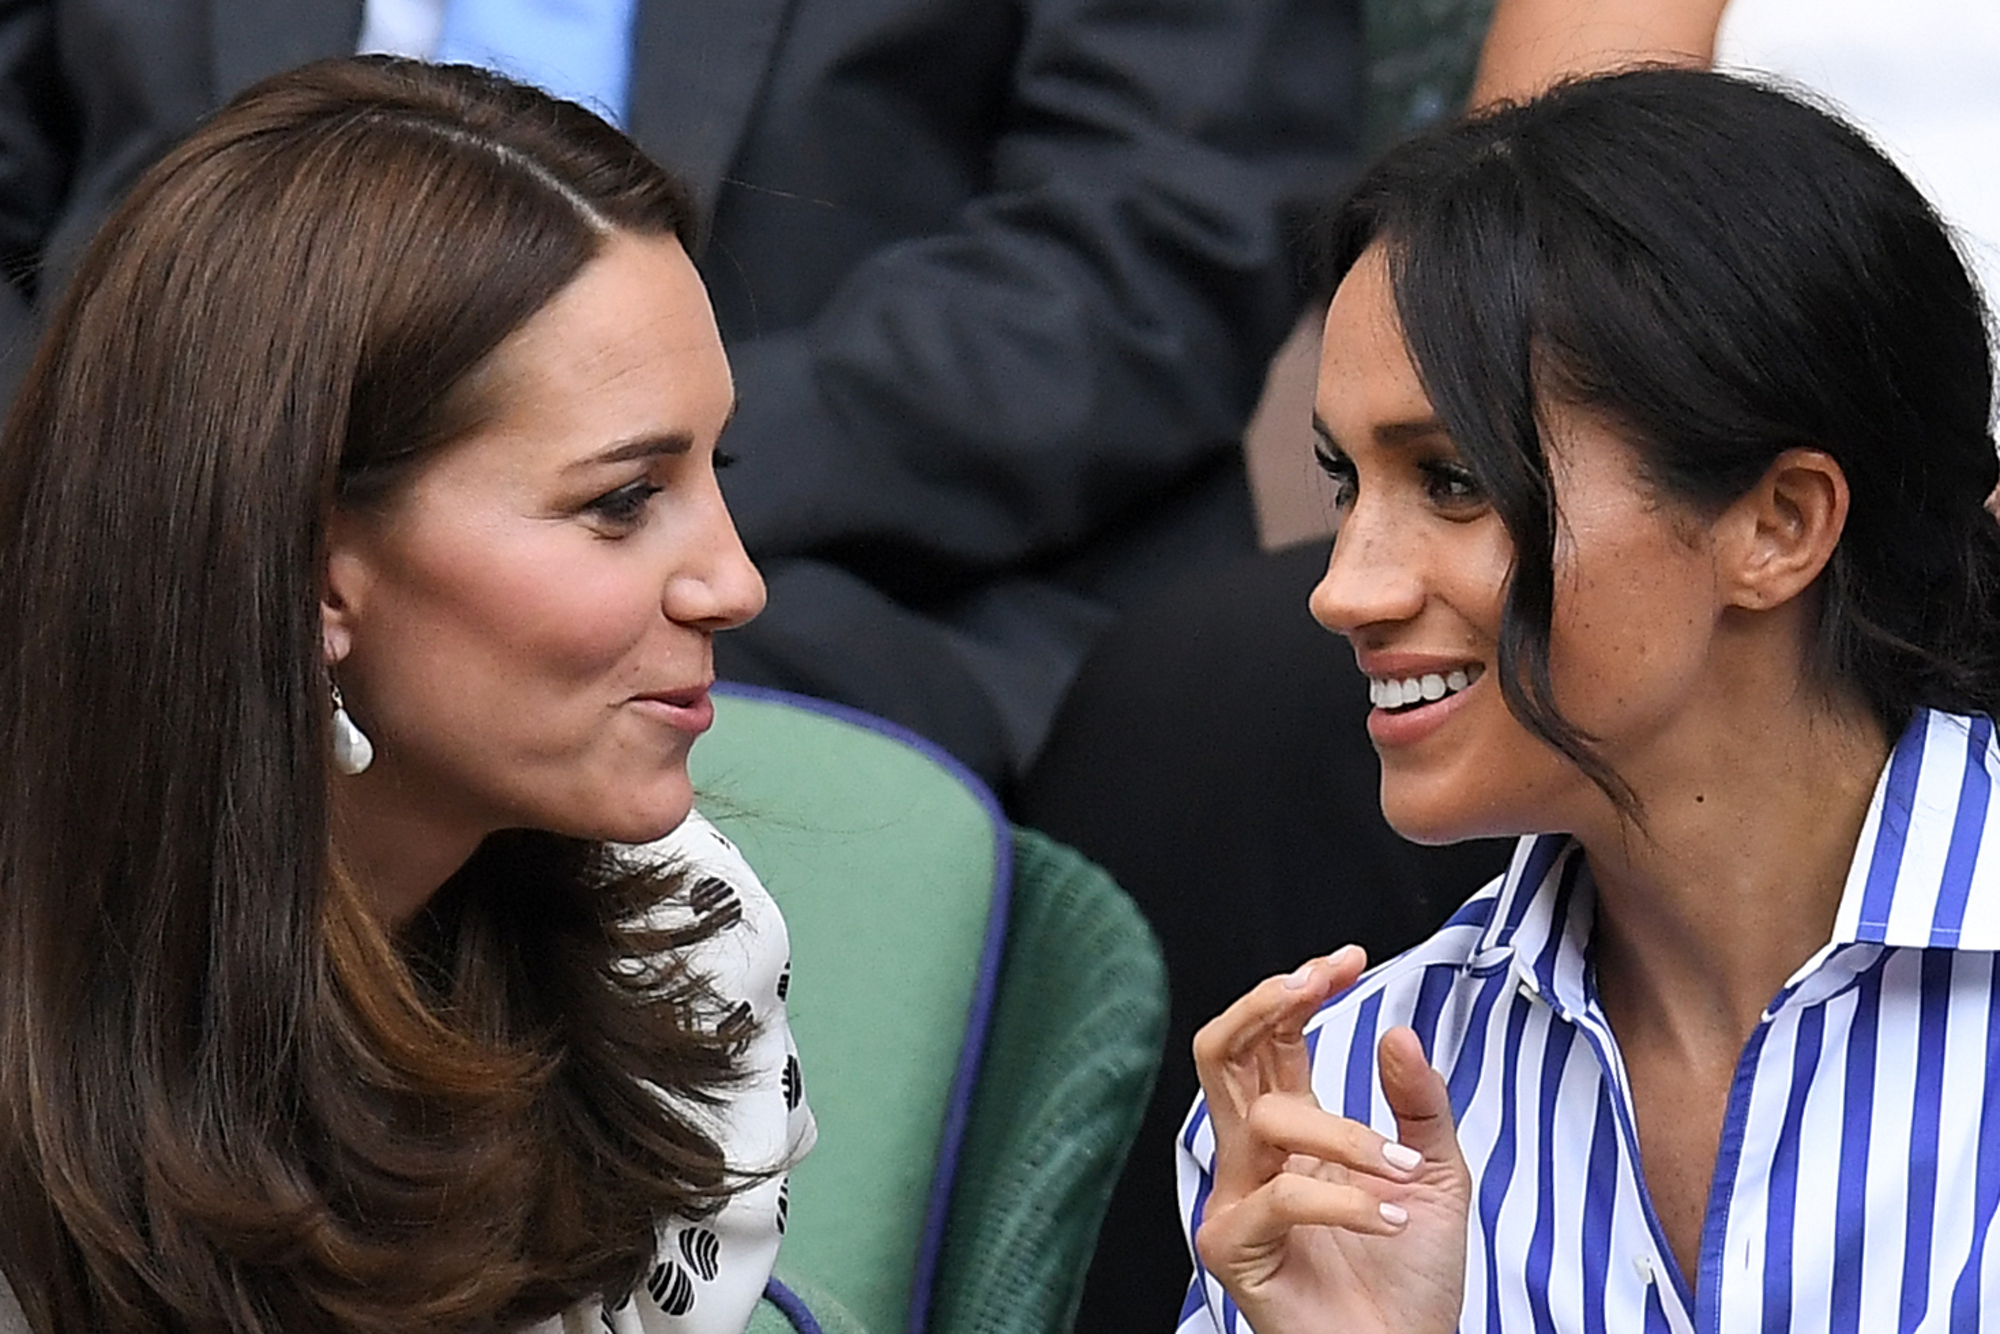 Catherine Duchess of Cambridge and Meghan Duchess of Sussex in the Royal Box